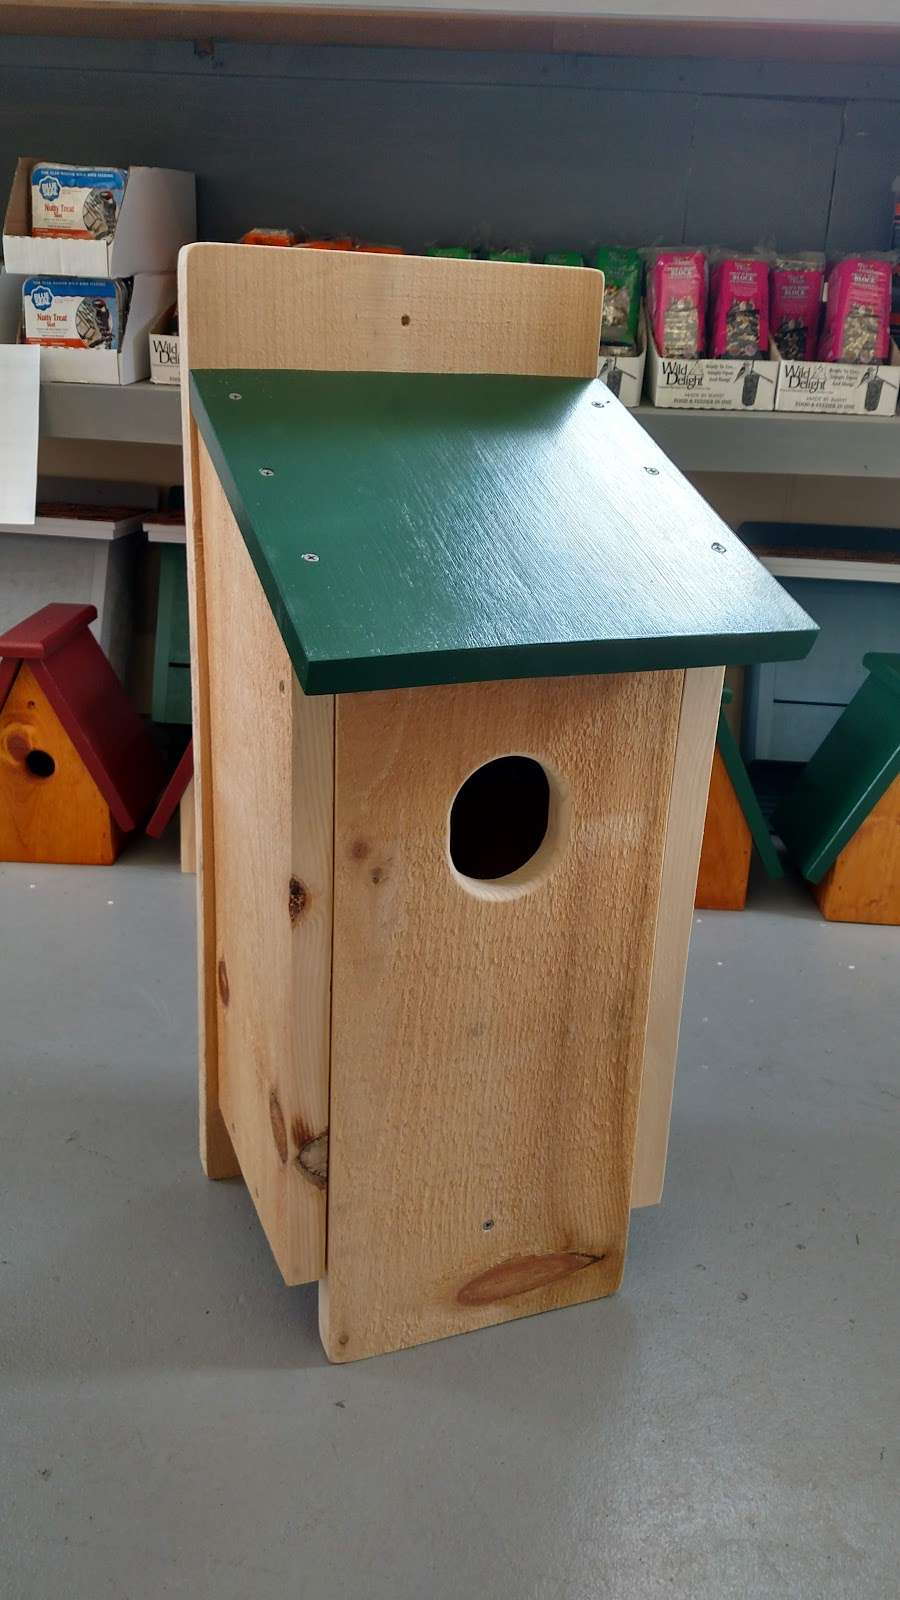 Architectural Birdhouses Unlimited - pet store  | Photo 6 of 10 | Address: 276 NH-101, Amherst, NH 03031, USA | Phone: (603) 554-8869